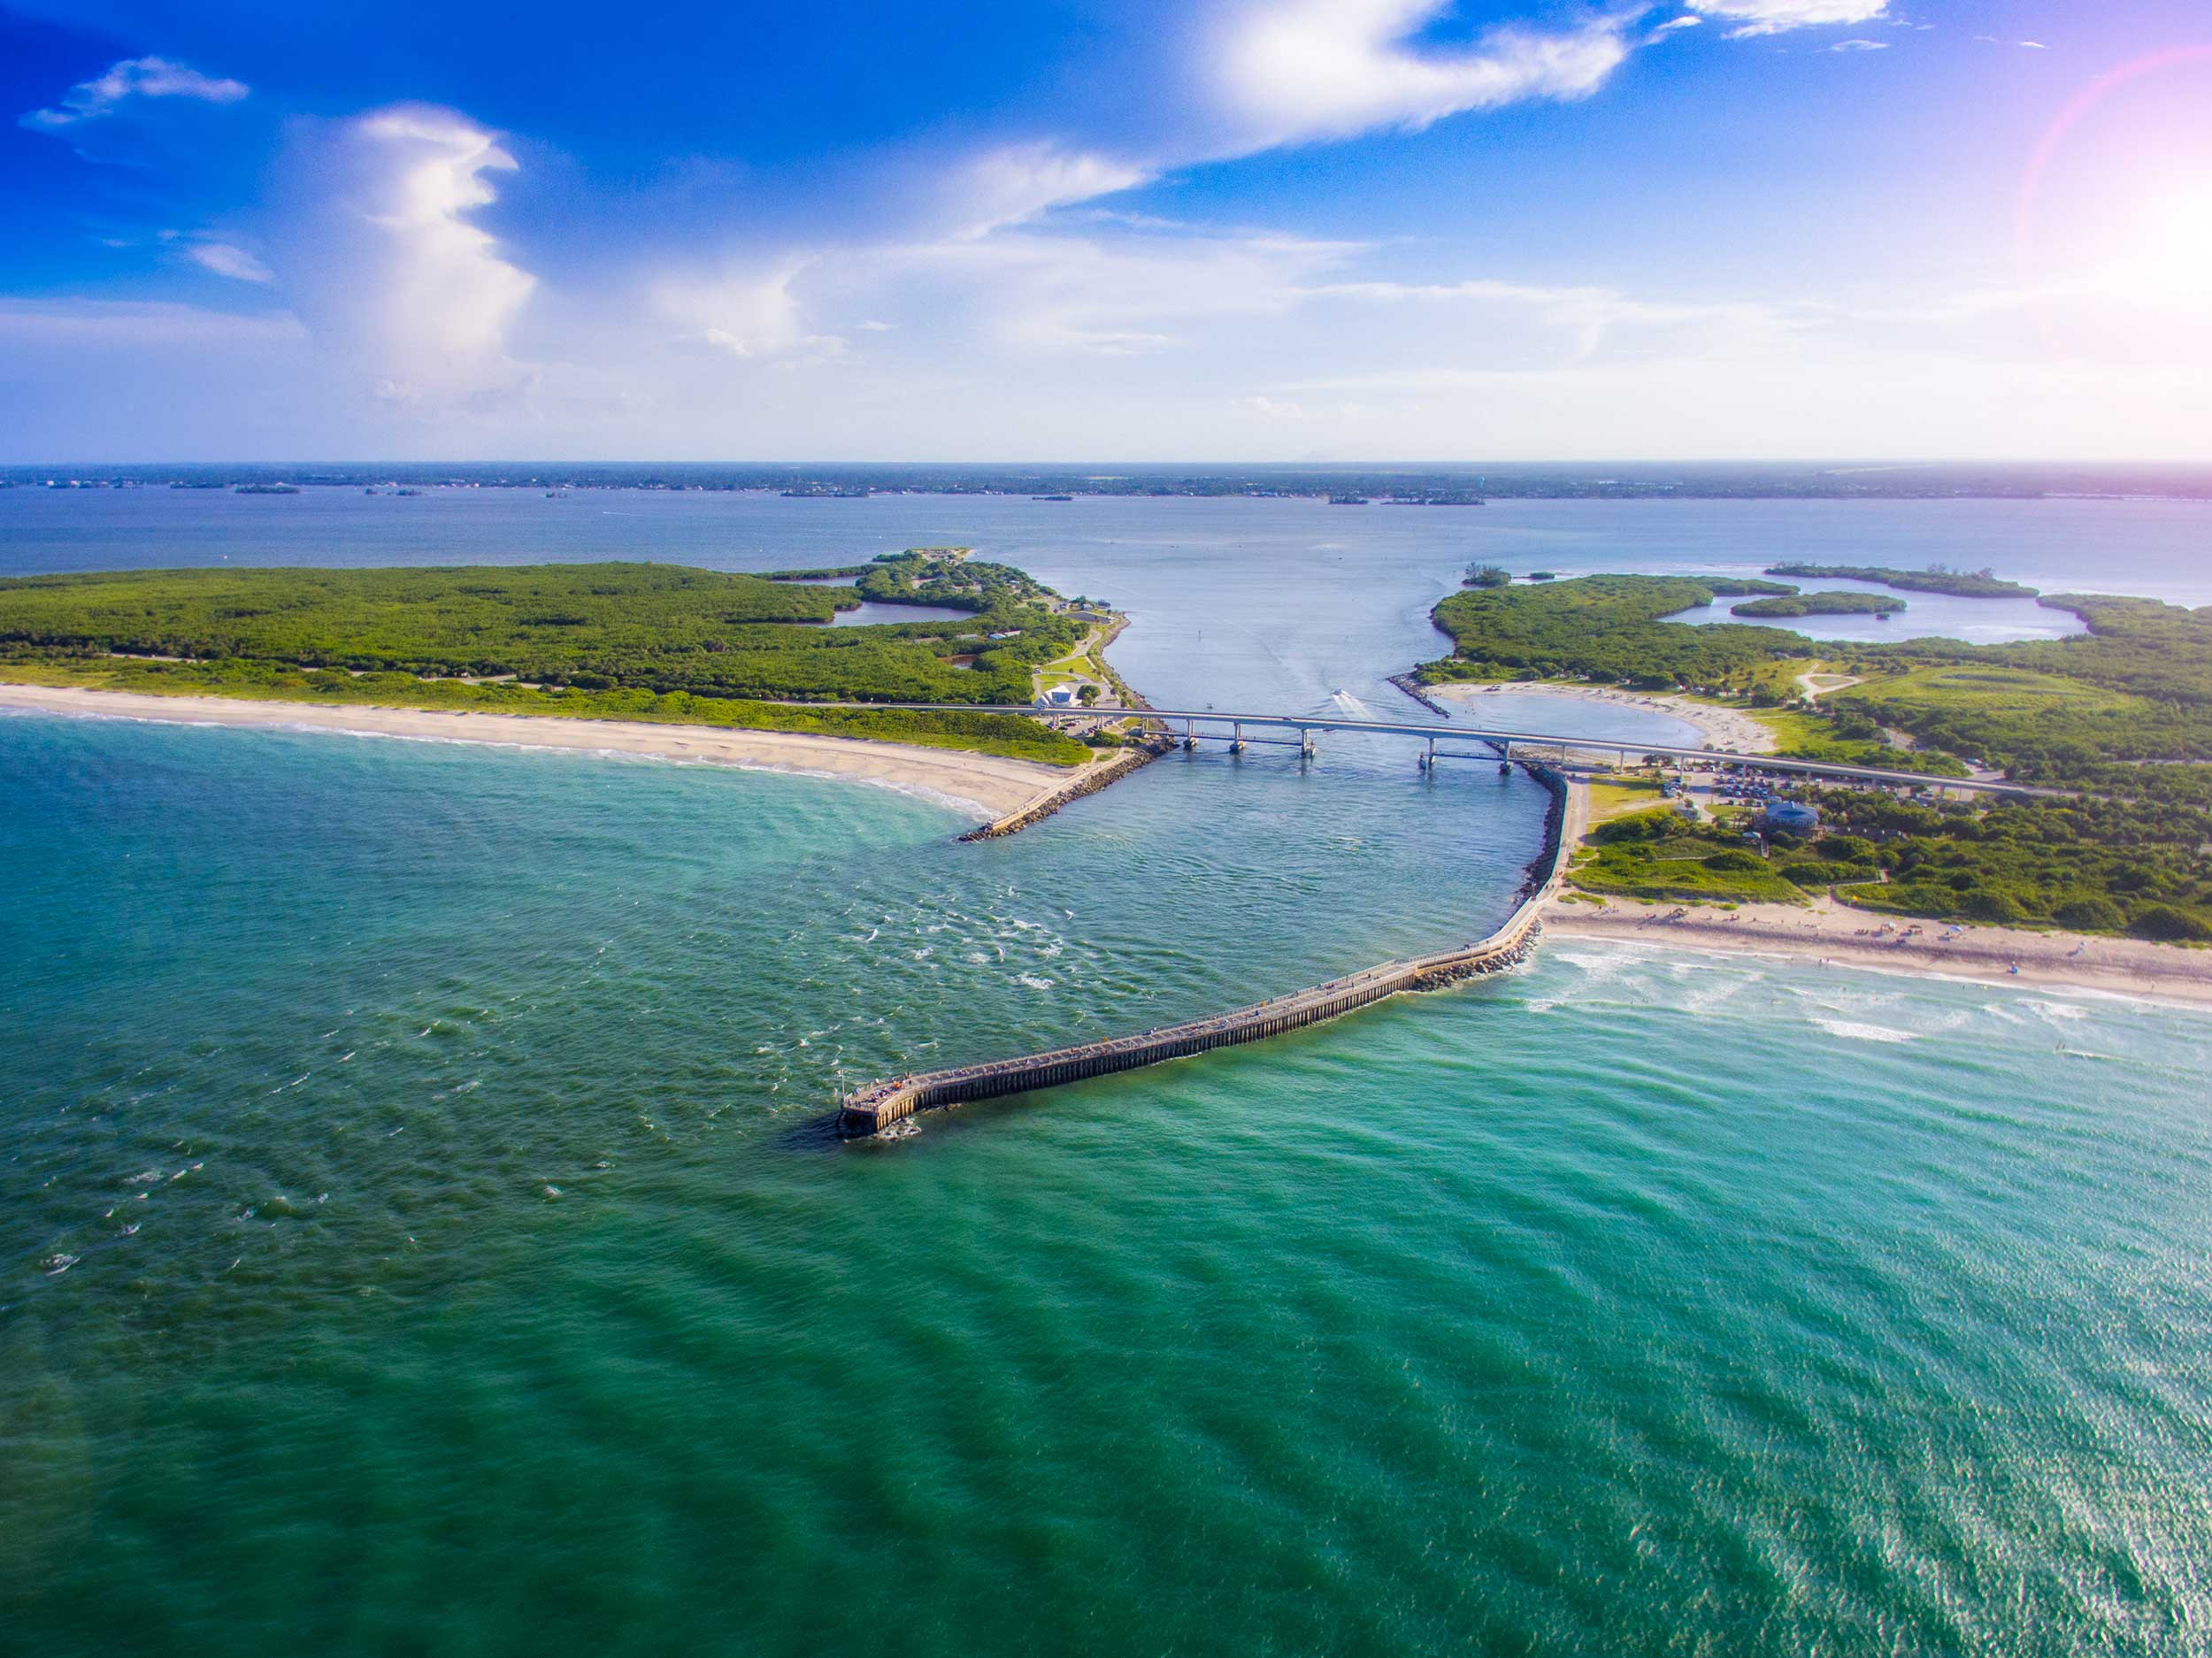 Melbourne-Beach-at-Sebastian-Inlet-Aerial-View-1